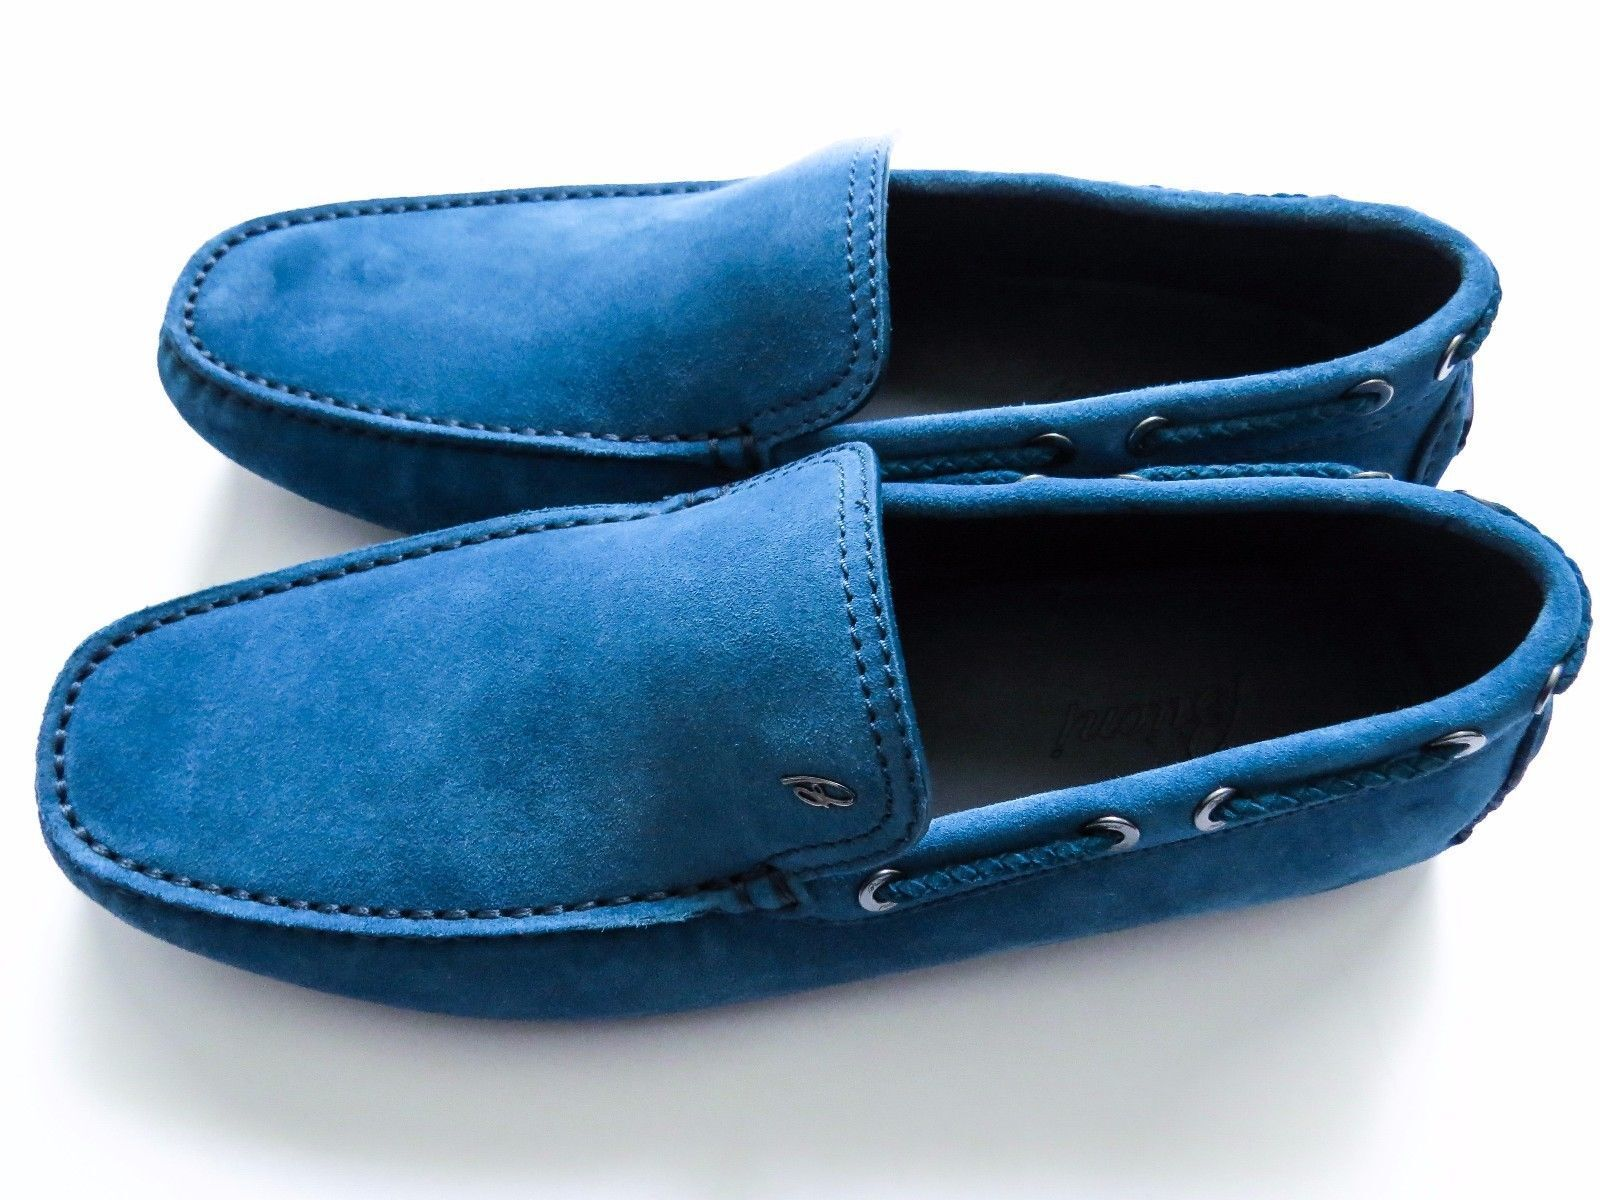 750 BRIONI Light blu Suede scarpe Loafers Moccasins Dimensione 11 US 44 Euro 10 UK